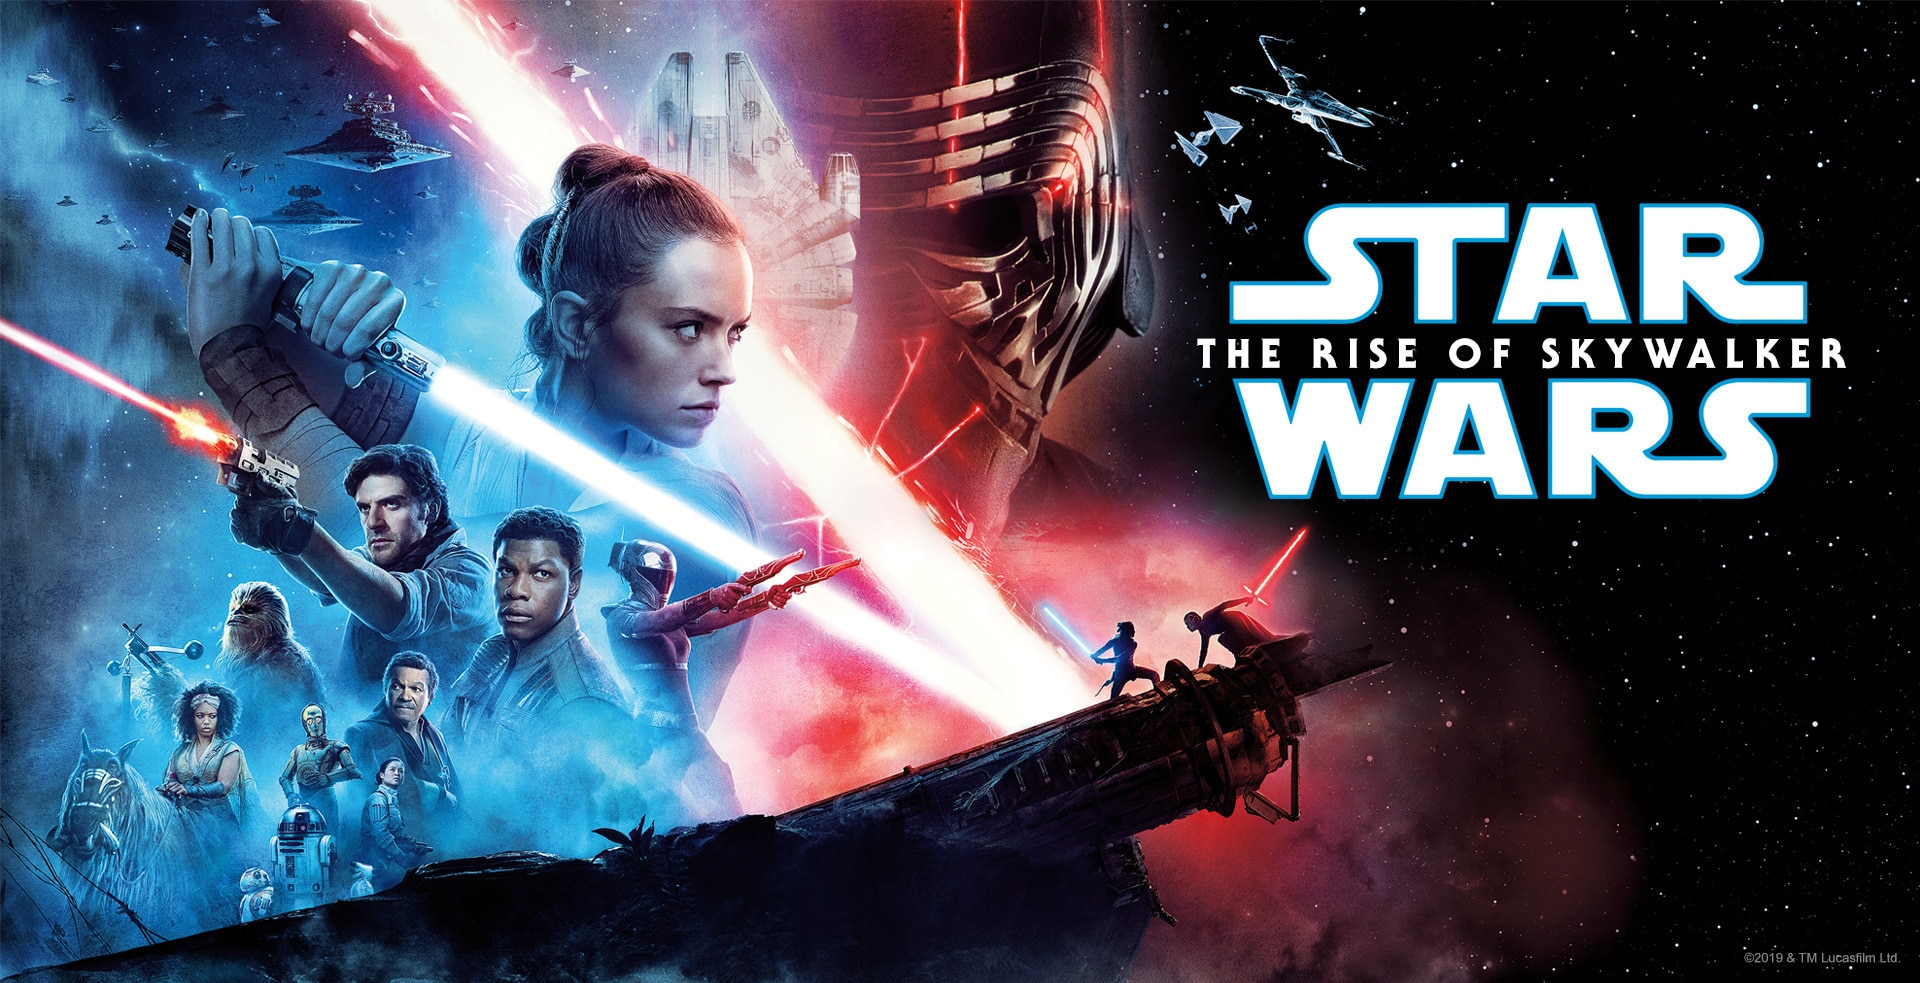 Star Wars Episode Ix The Rise Of Skywalker Disney Movies Malaysia